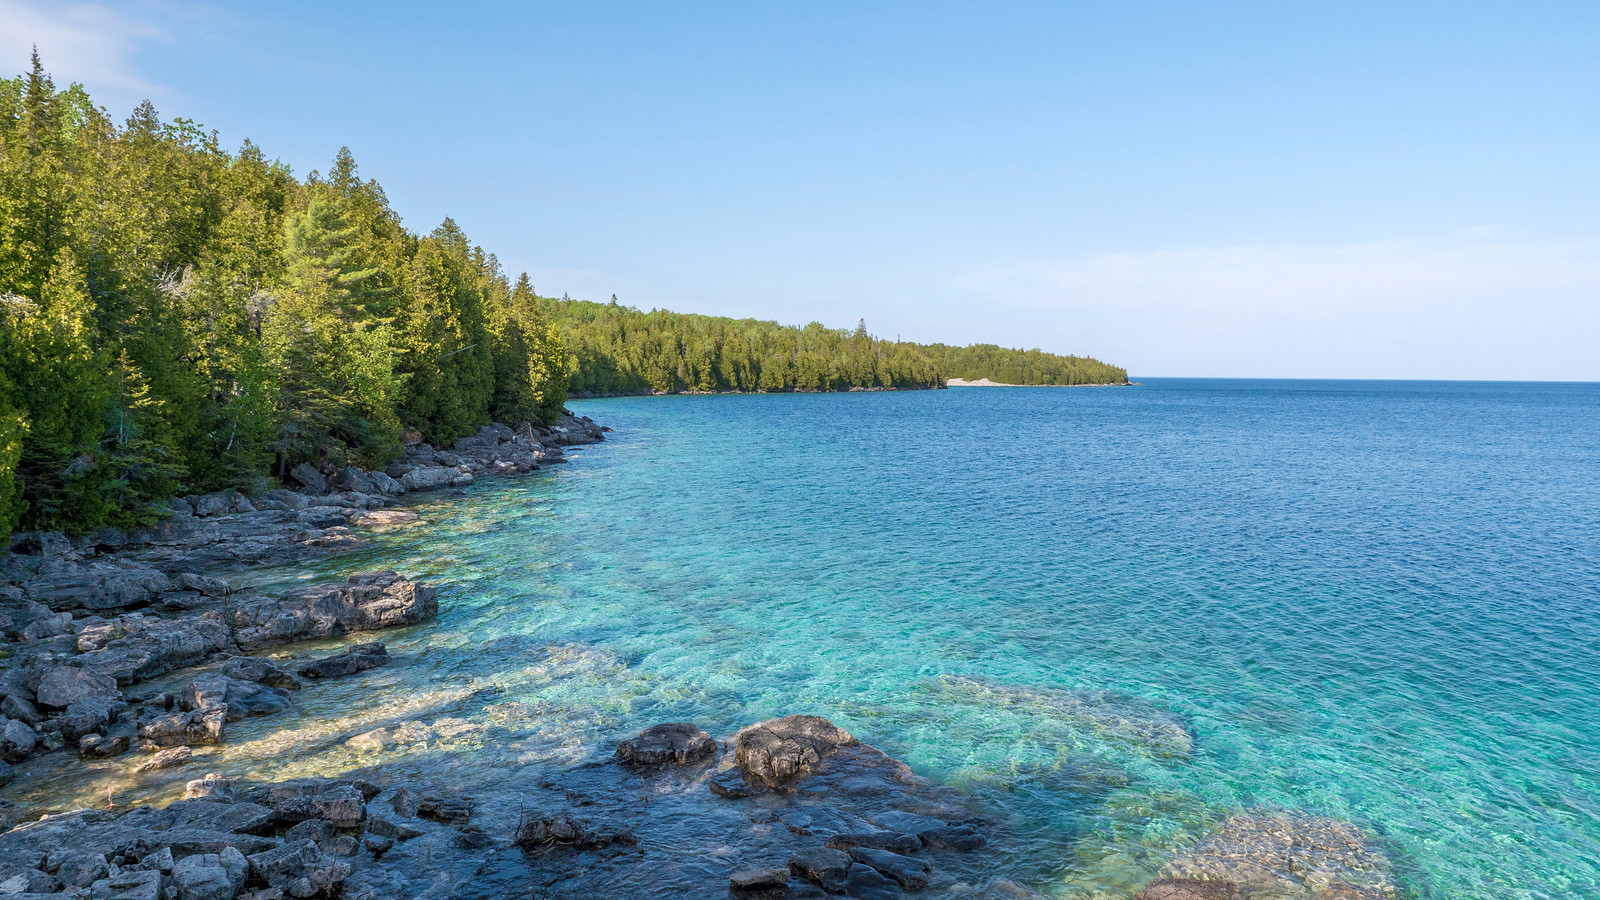 Little Dunks Bay Lookout. Best Bruce Peninsula Hiking Trails for Nature Lovers